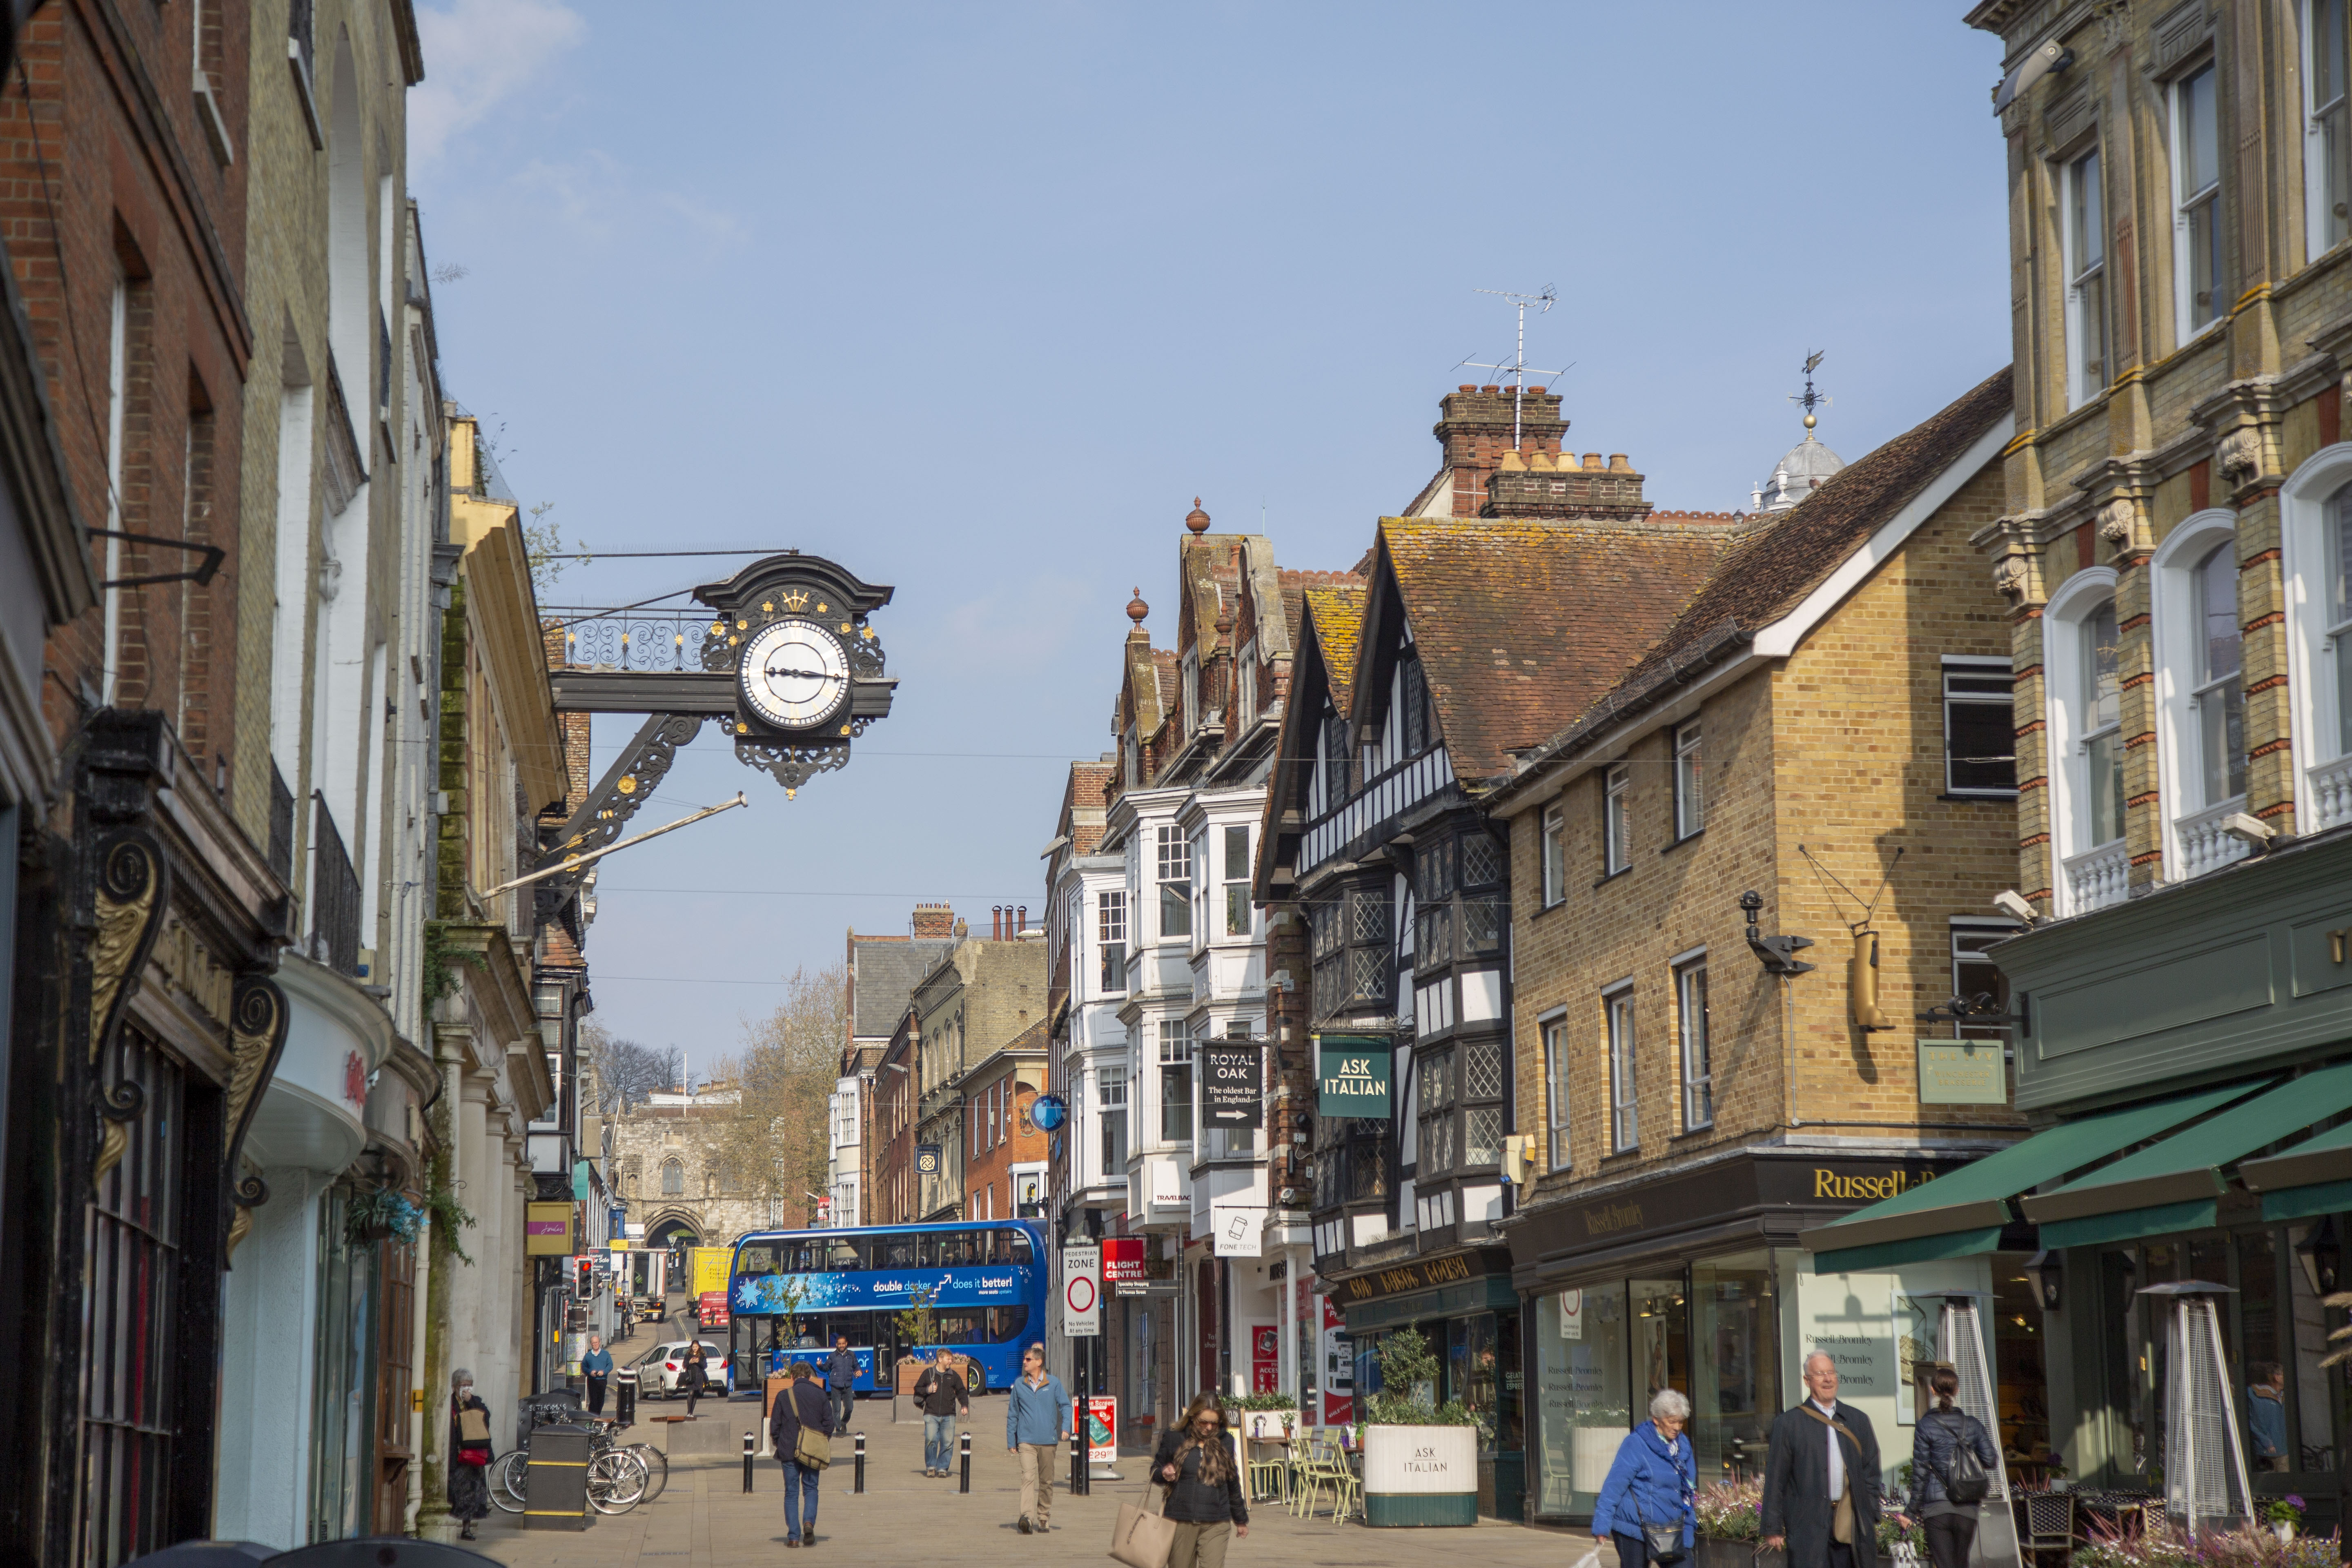 The top of Winchester High Street, including the black clock